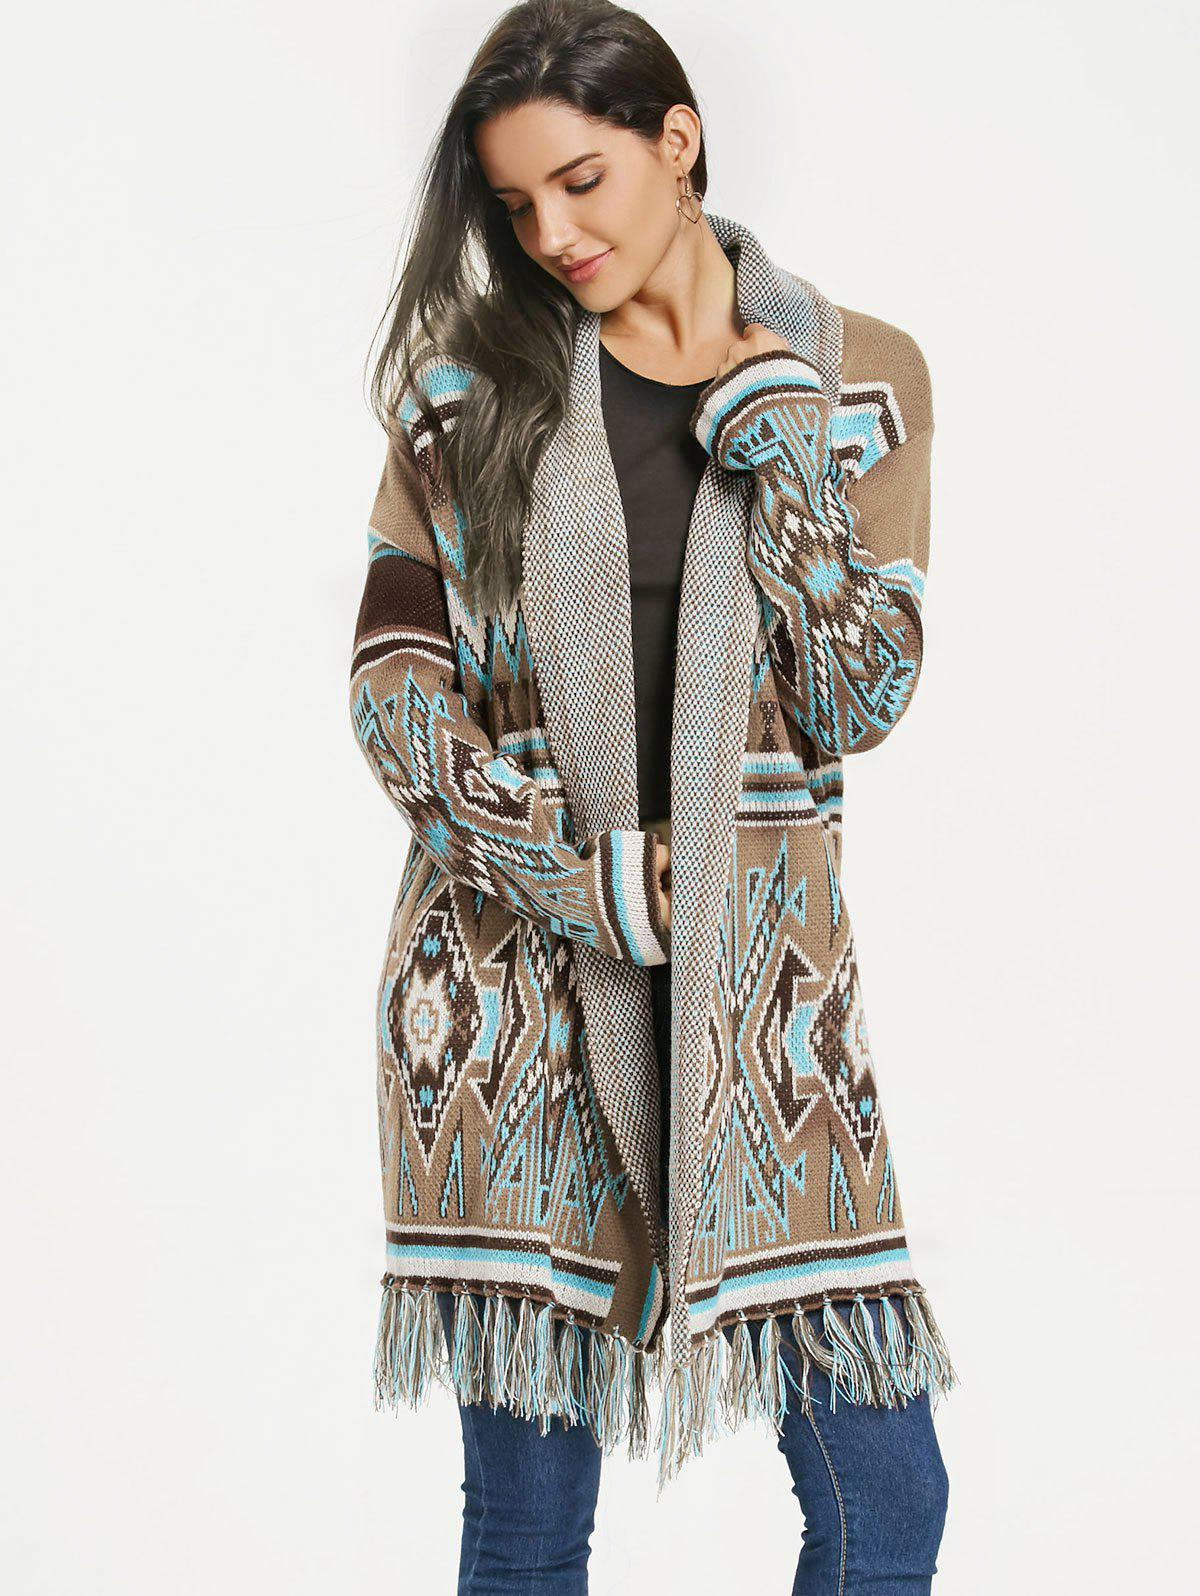 https://www.dresslily.com/aztec-geometric-fringed-knit-tunic-product2485157.html?lkid=12823953